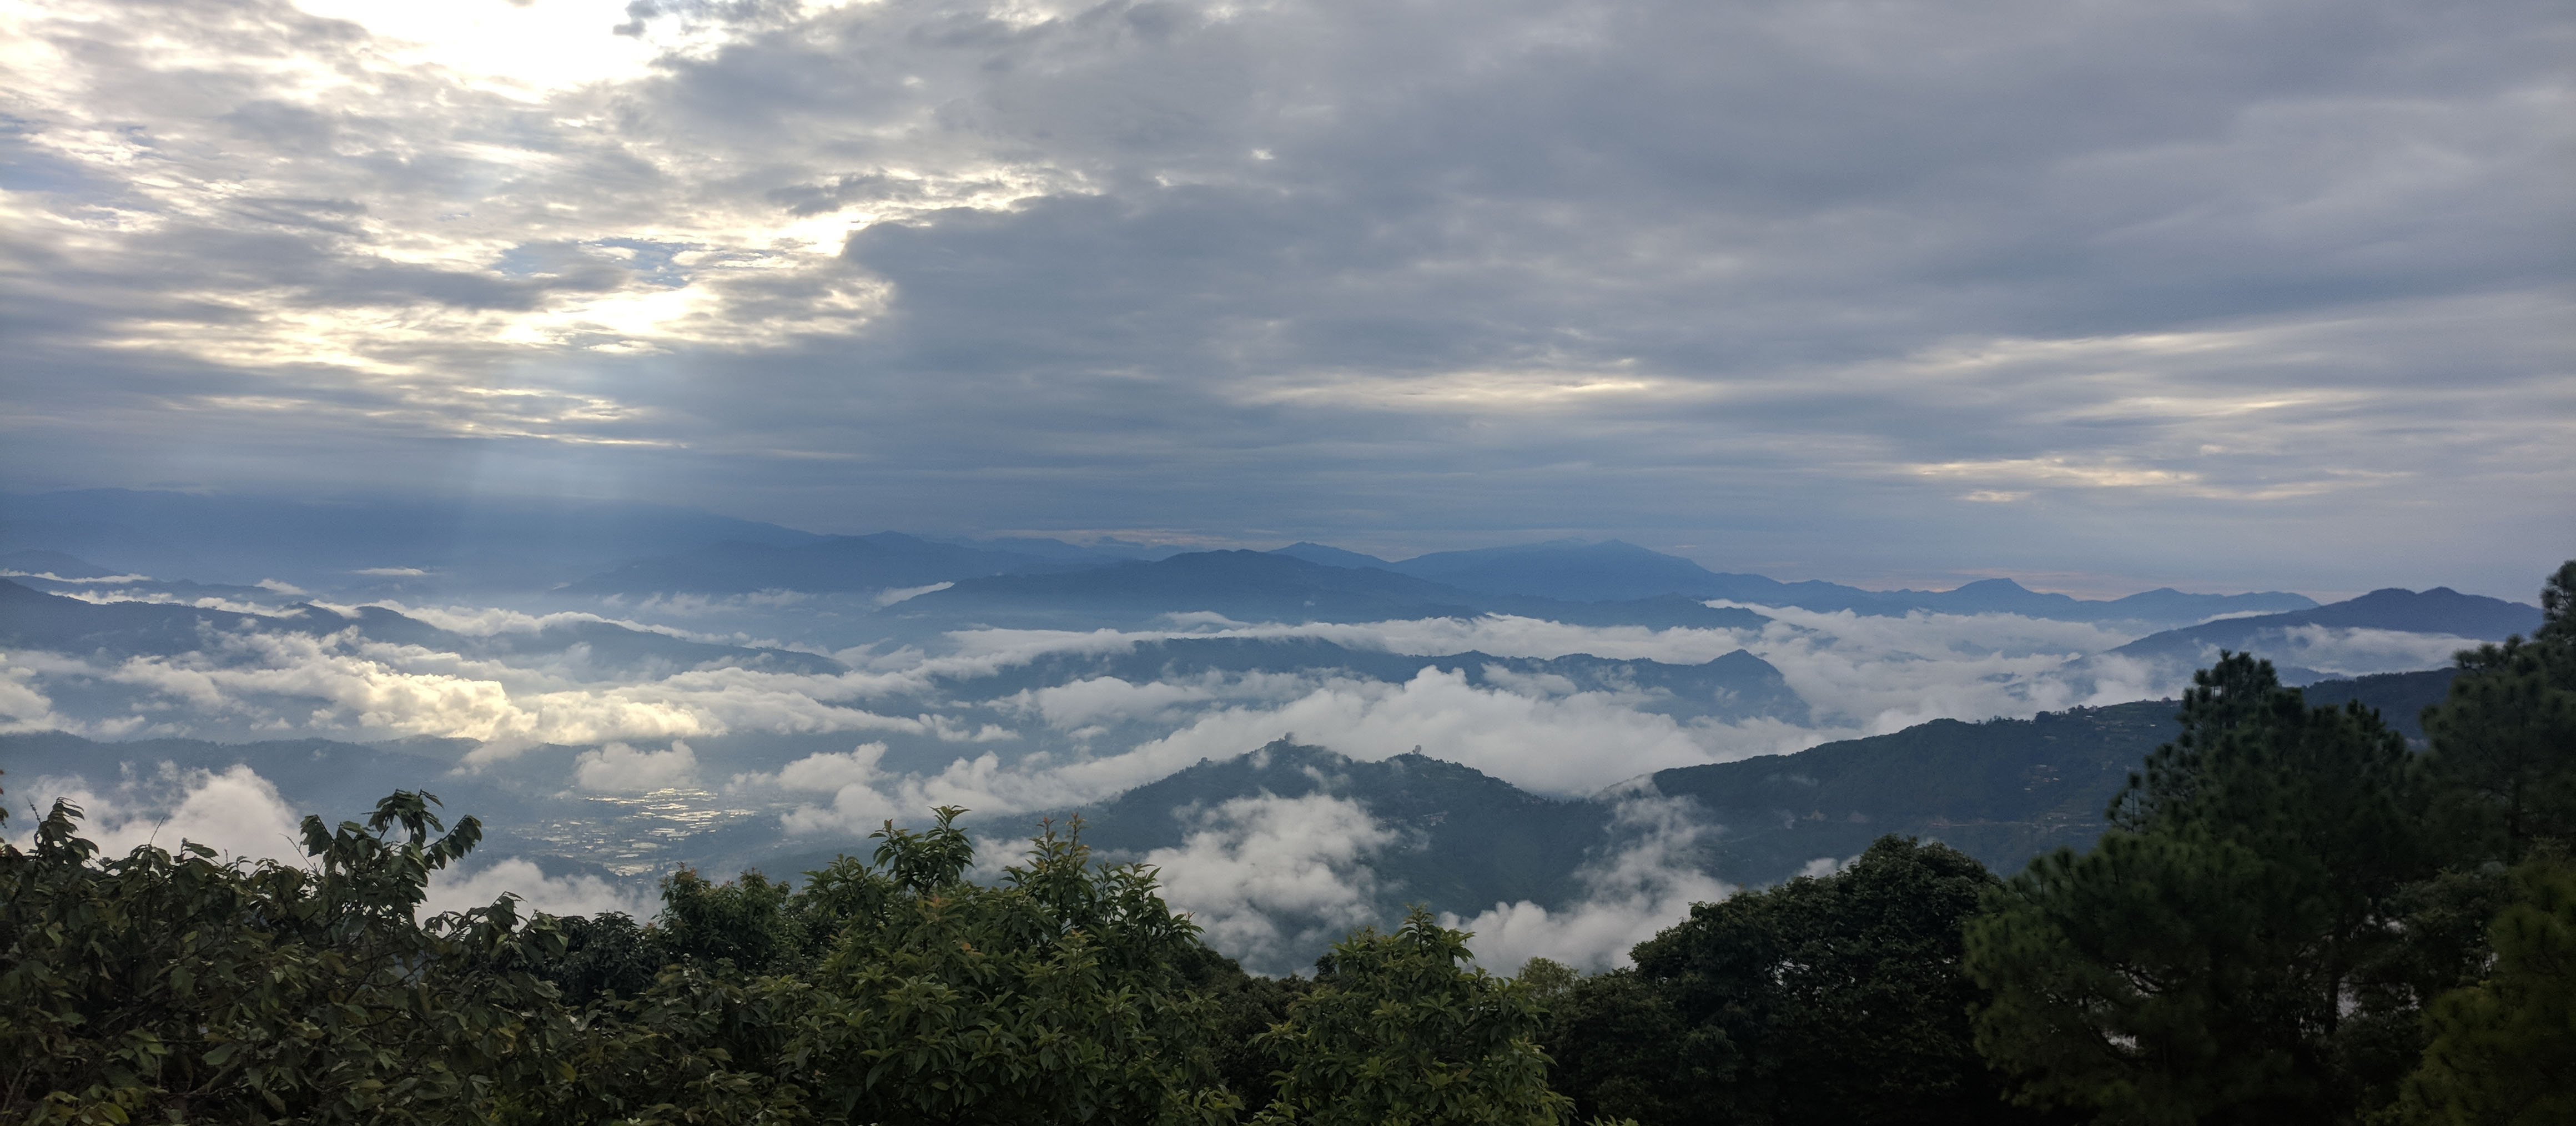 banepa gosaithan hilltop view east patchy cloudy